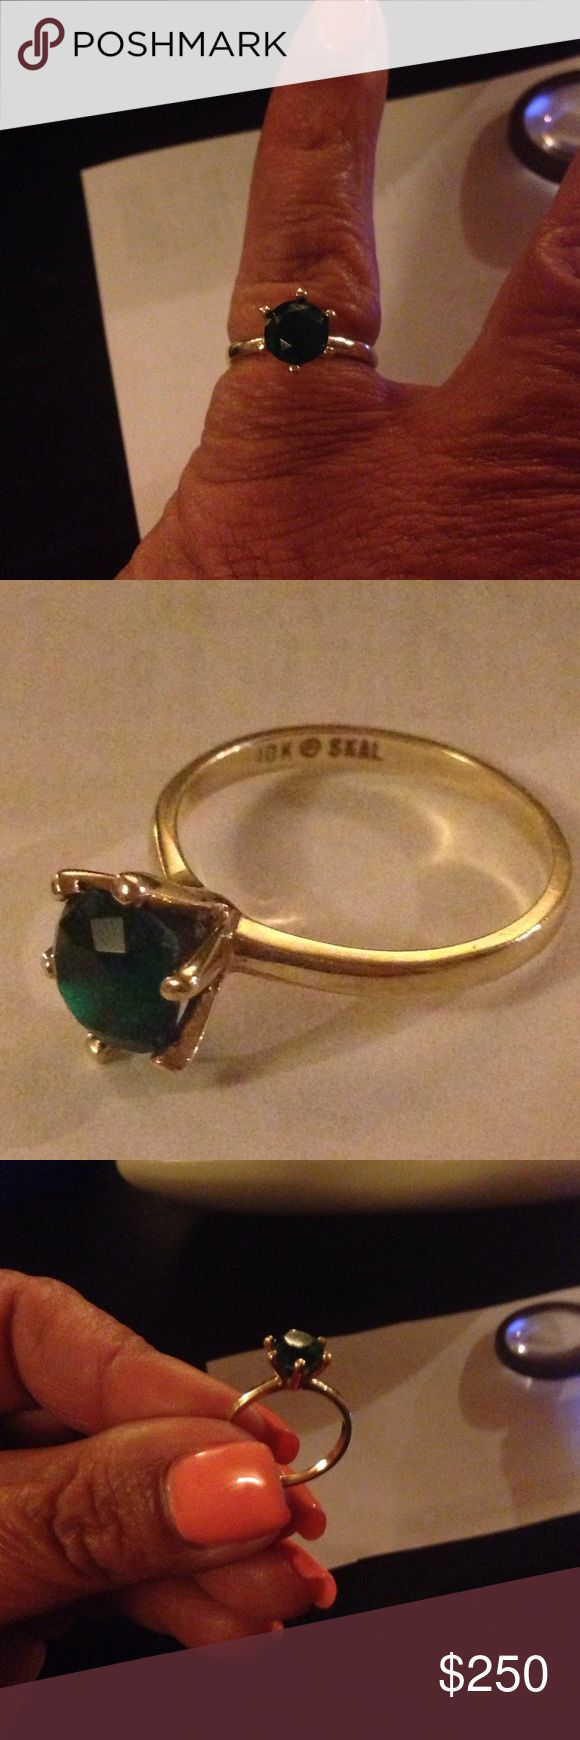 10K plum solid gold emerald ring 10K solid gold SKAL= designer Hubertus Von Skalet vintage emerald ring size 7. Priceless to our family as it is an heirloom and birthstone of my youngest daughter who was to inherit this however we came up short on tuition for her final year of college and her education is also priceless. She will be the first in our family to complete a higher education degree as a BSN in nursing. Please consider when making offers. Thank you in advance. Jewelry Rings